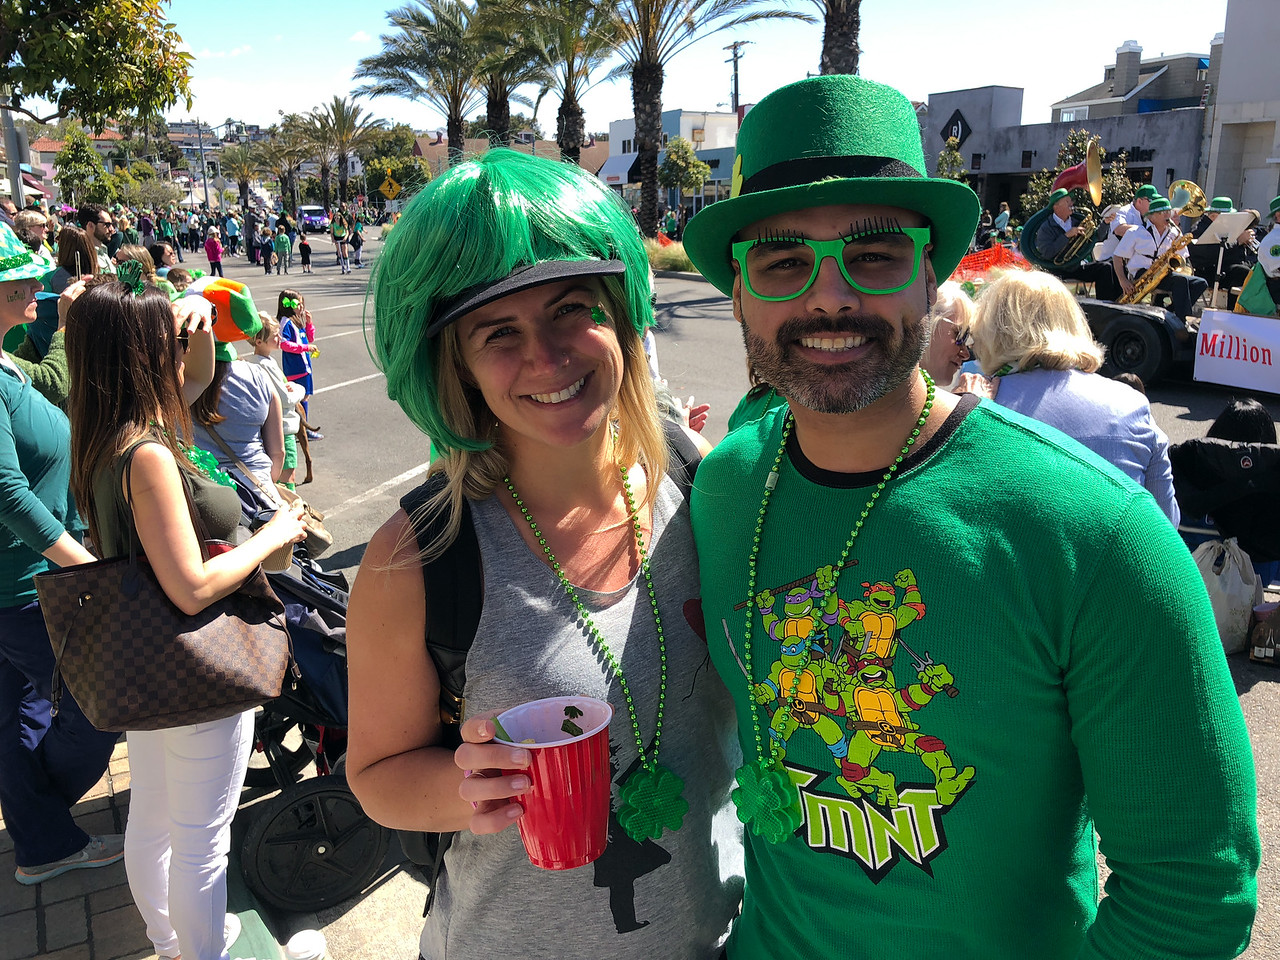 Parade revelers all decked out in green